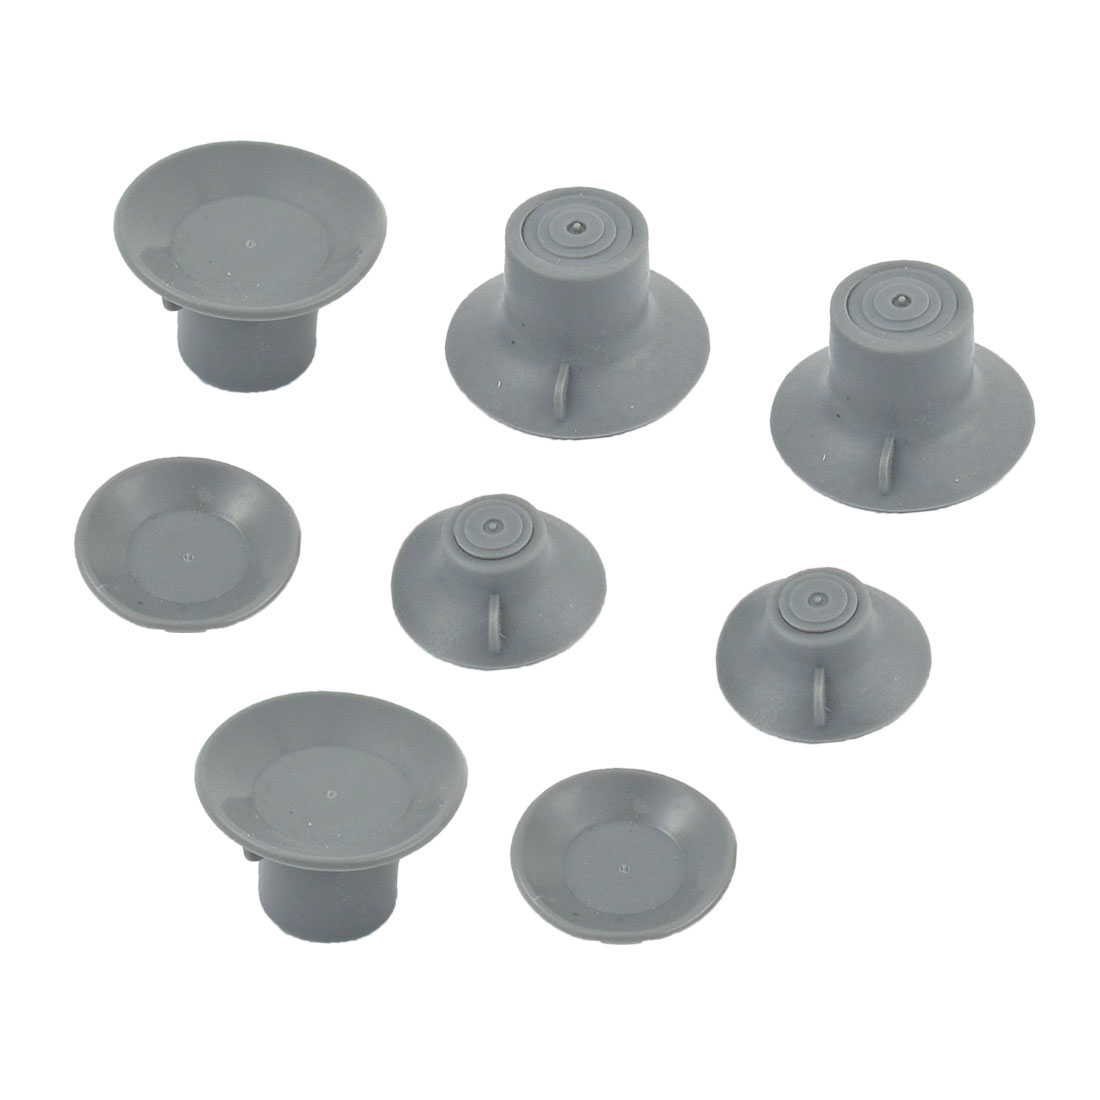 8 Pcs Gray Soft Silicone Cool Feet Suction Cup for Laptops